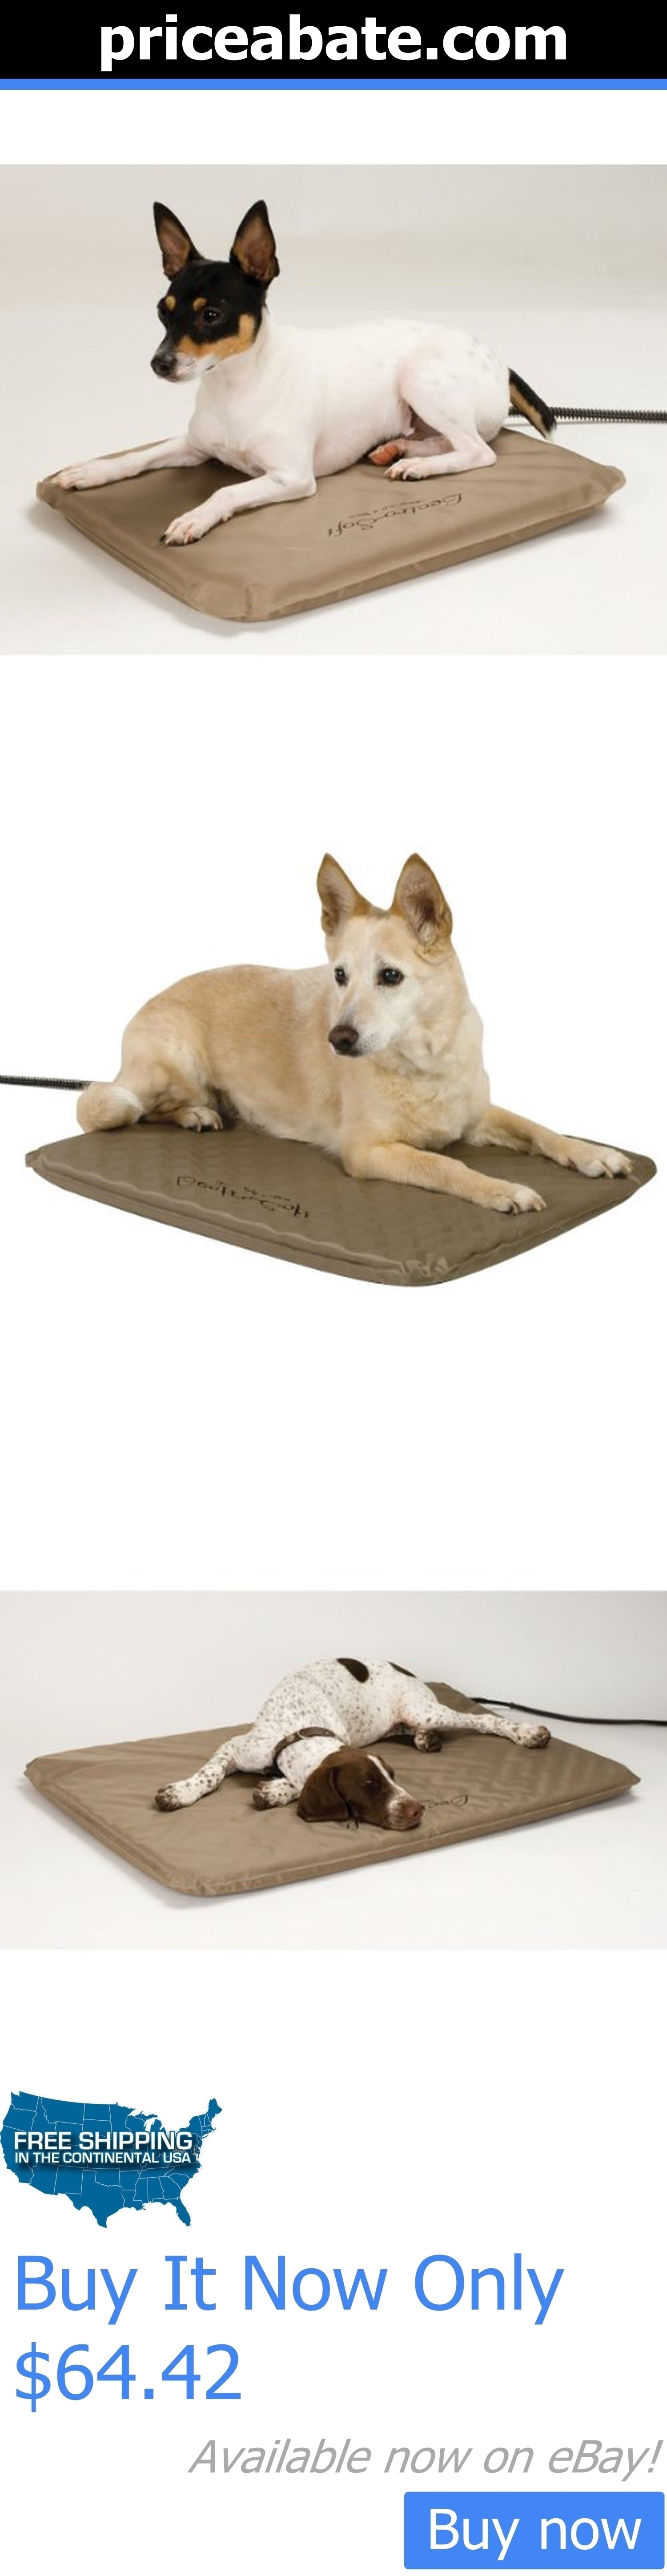 Animals Dog: Pet Dog Heated Pad Cover Dog Nesting Soft Outdoor Heated Bed With Free Cover New BUY IT NOW ONLY: $64.42 #priceabateAnimalsDog OR #priceabate